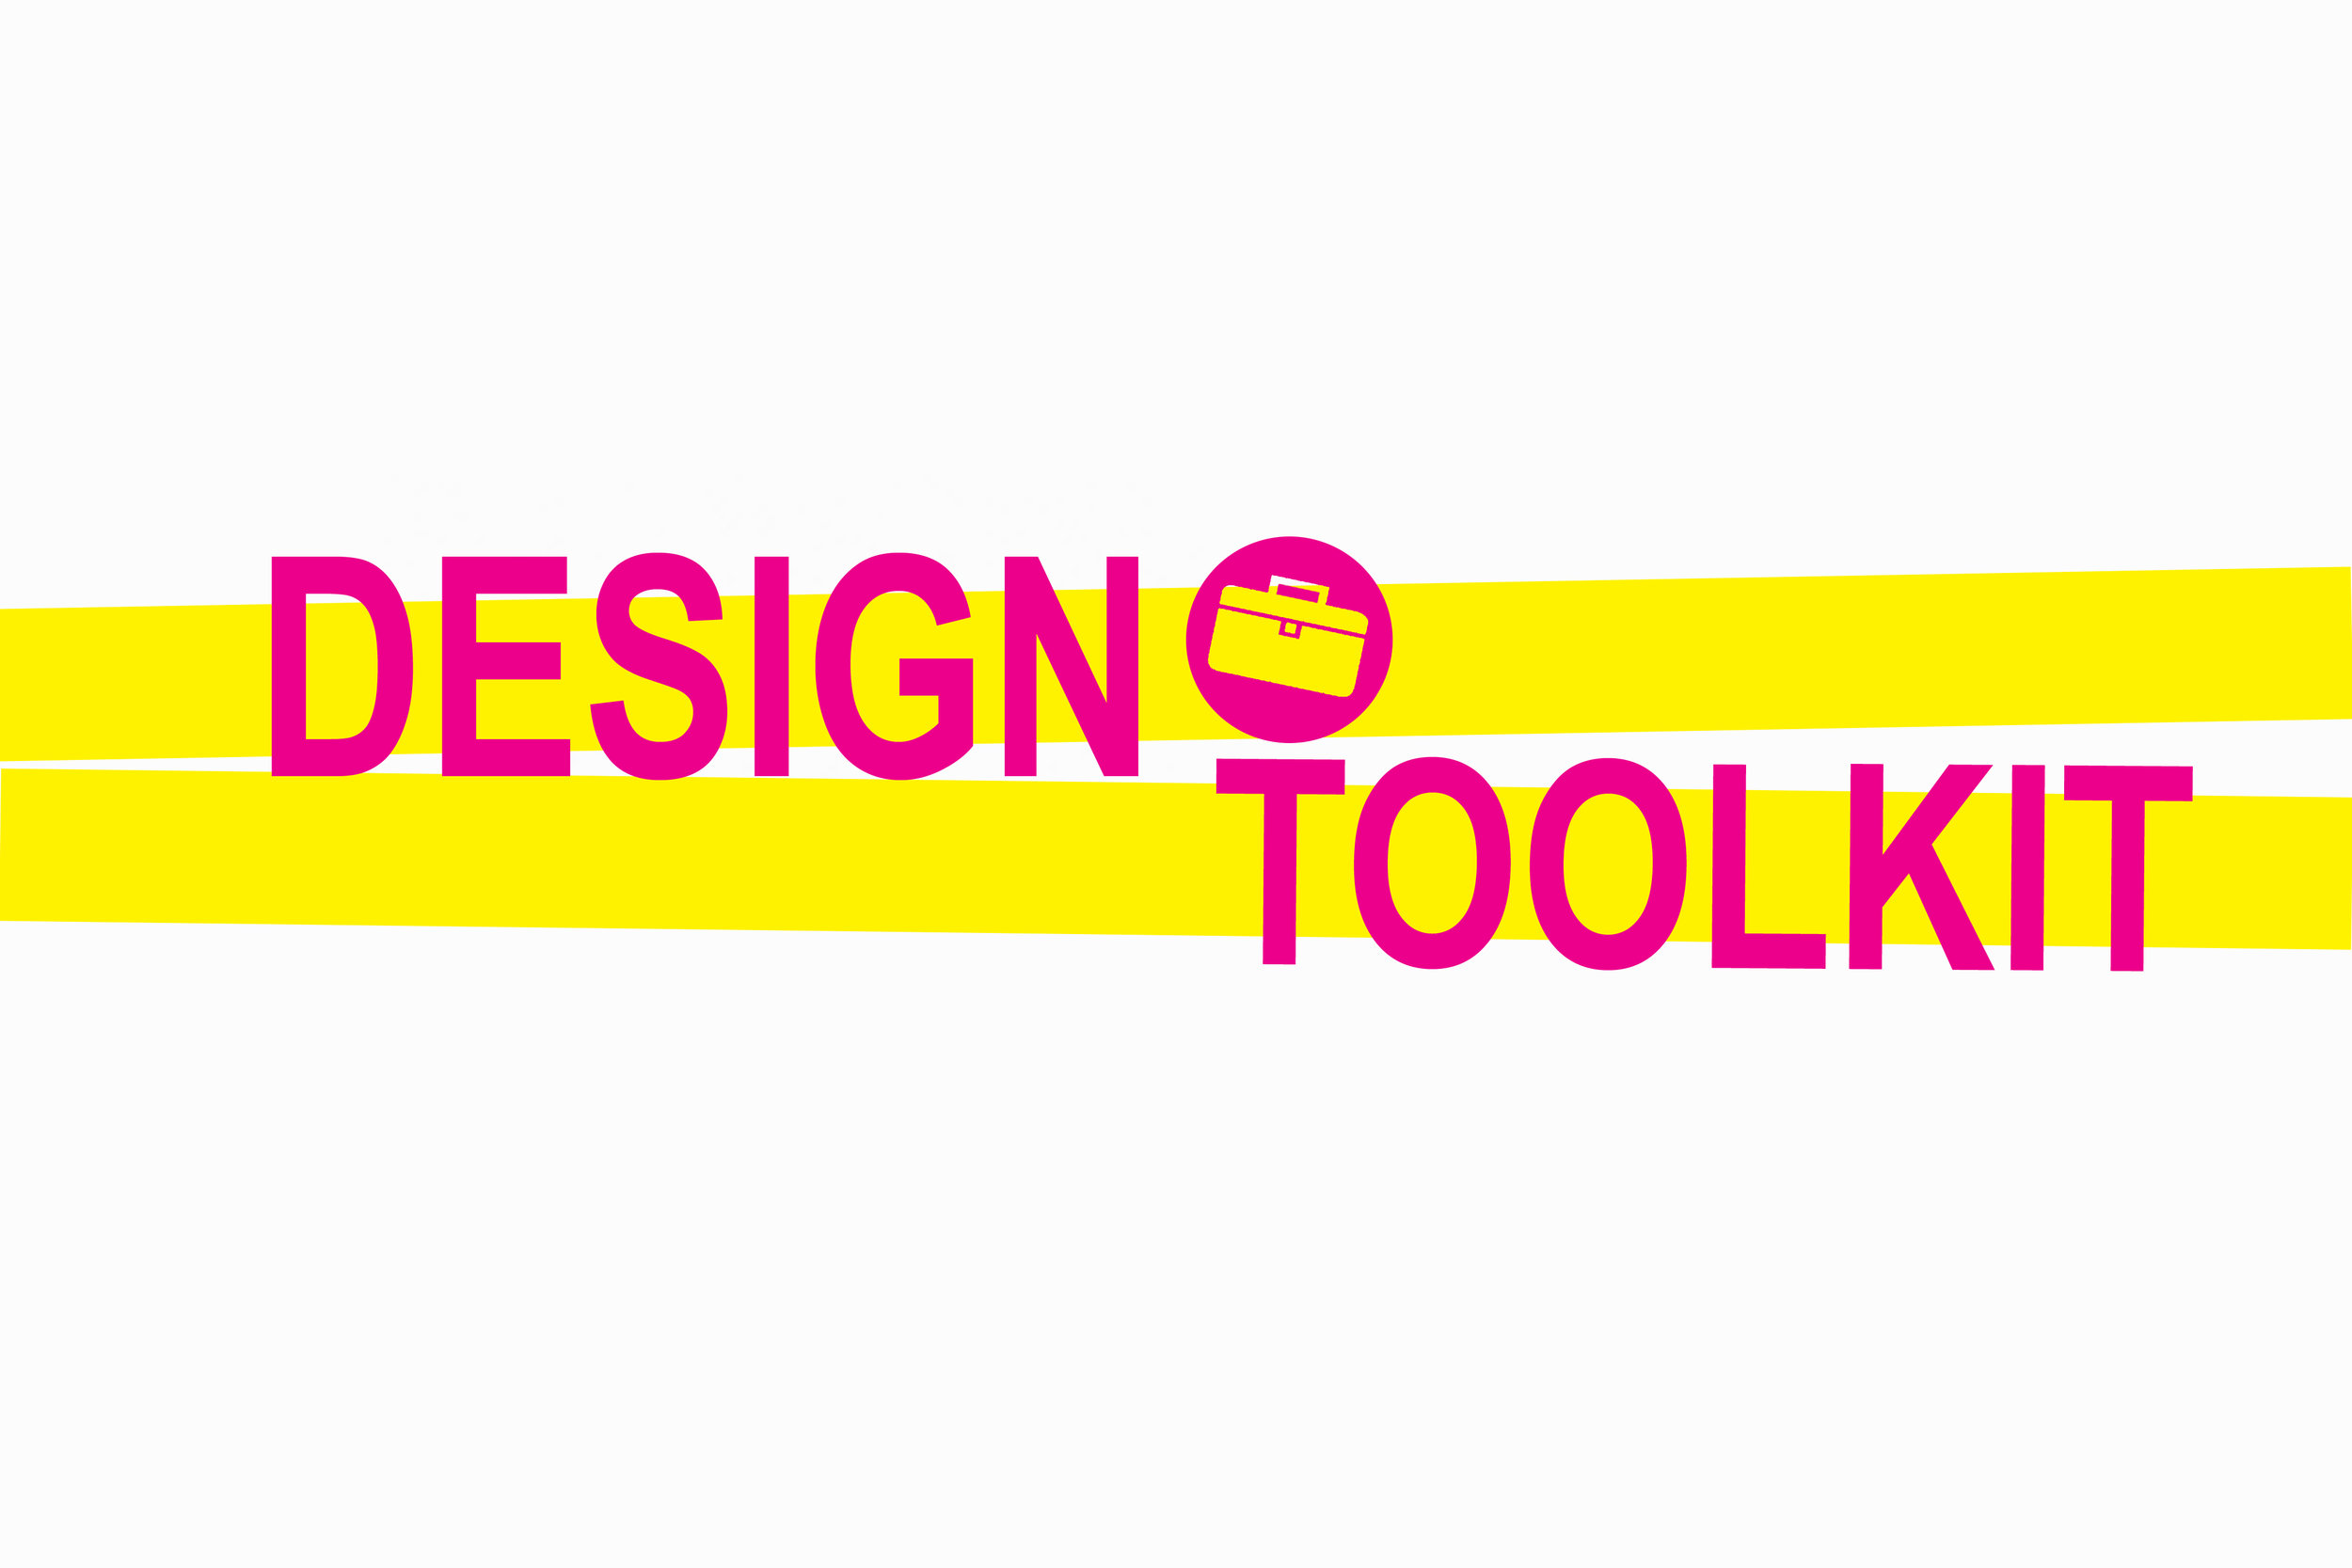 design toolkit title for website.jpg